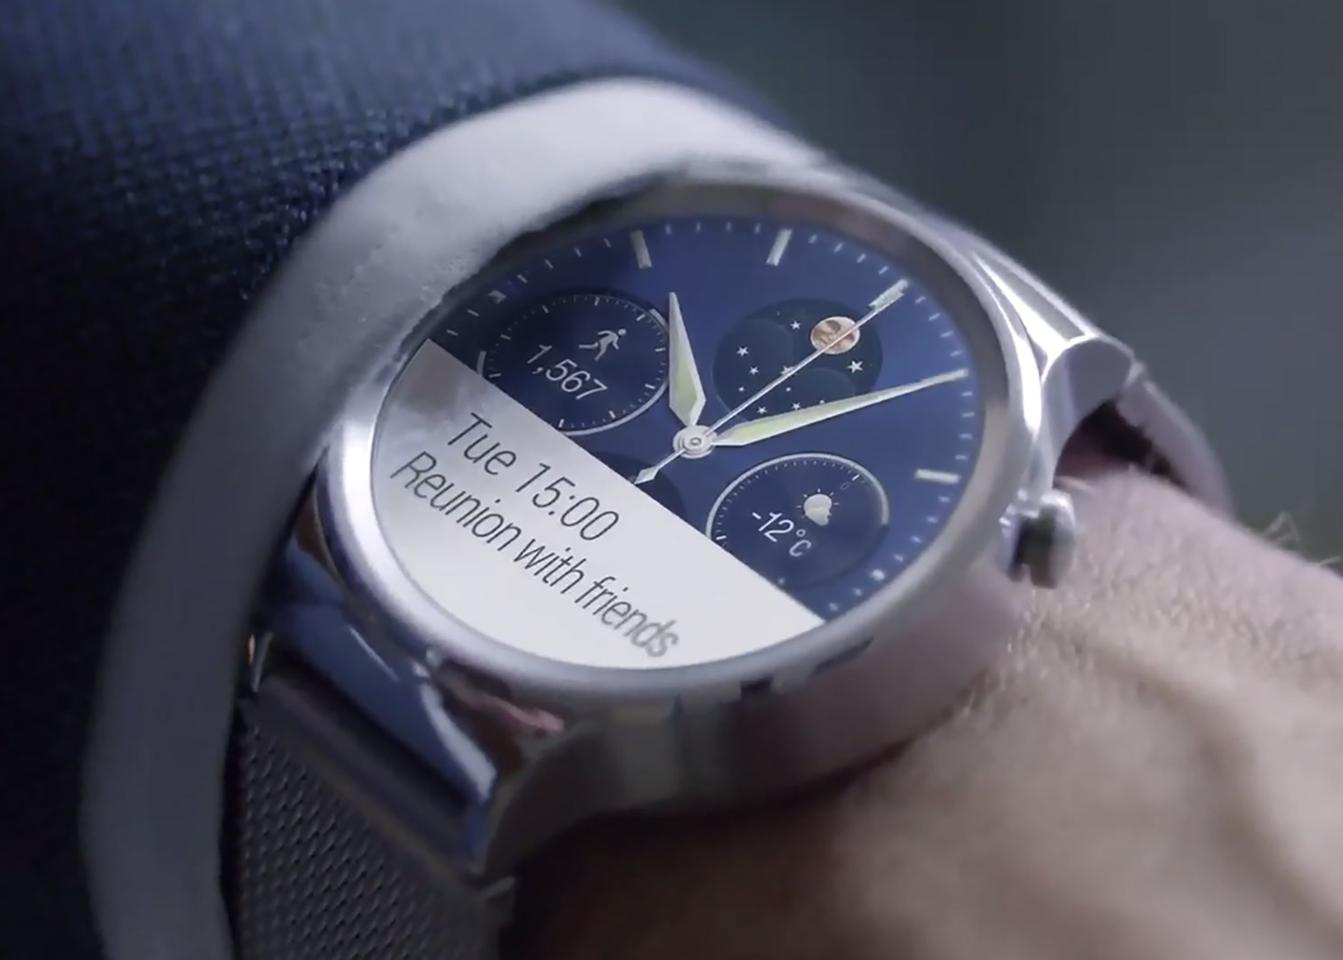 The Huawei Watch